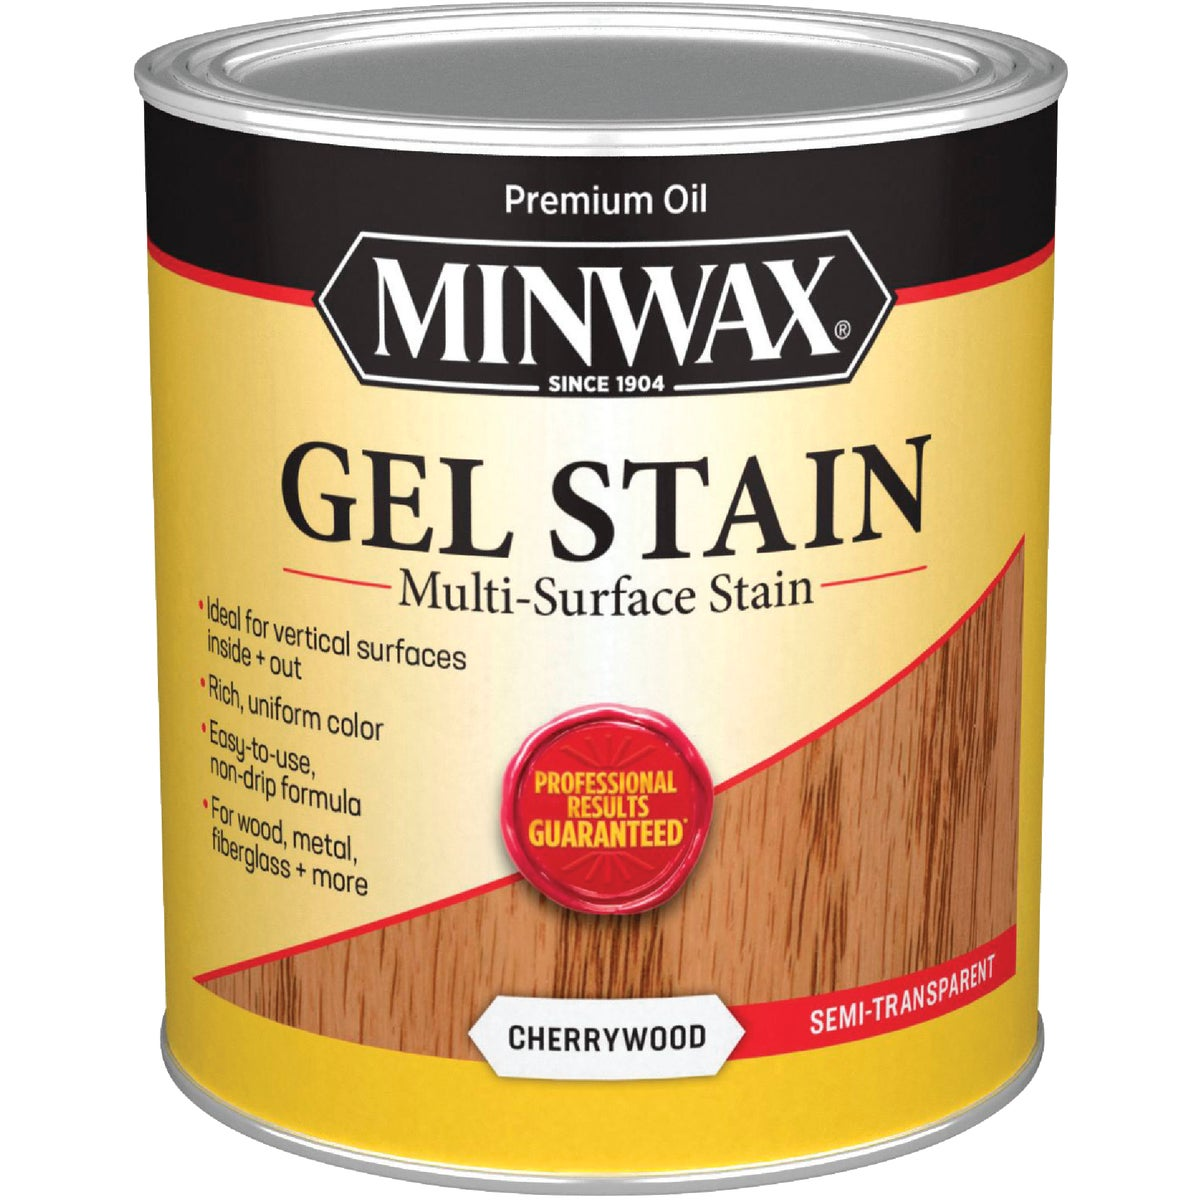 CHERRYWOOD GEL STAIN - 66070 by Minwax Company